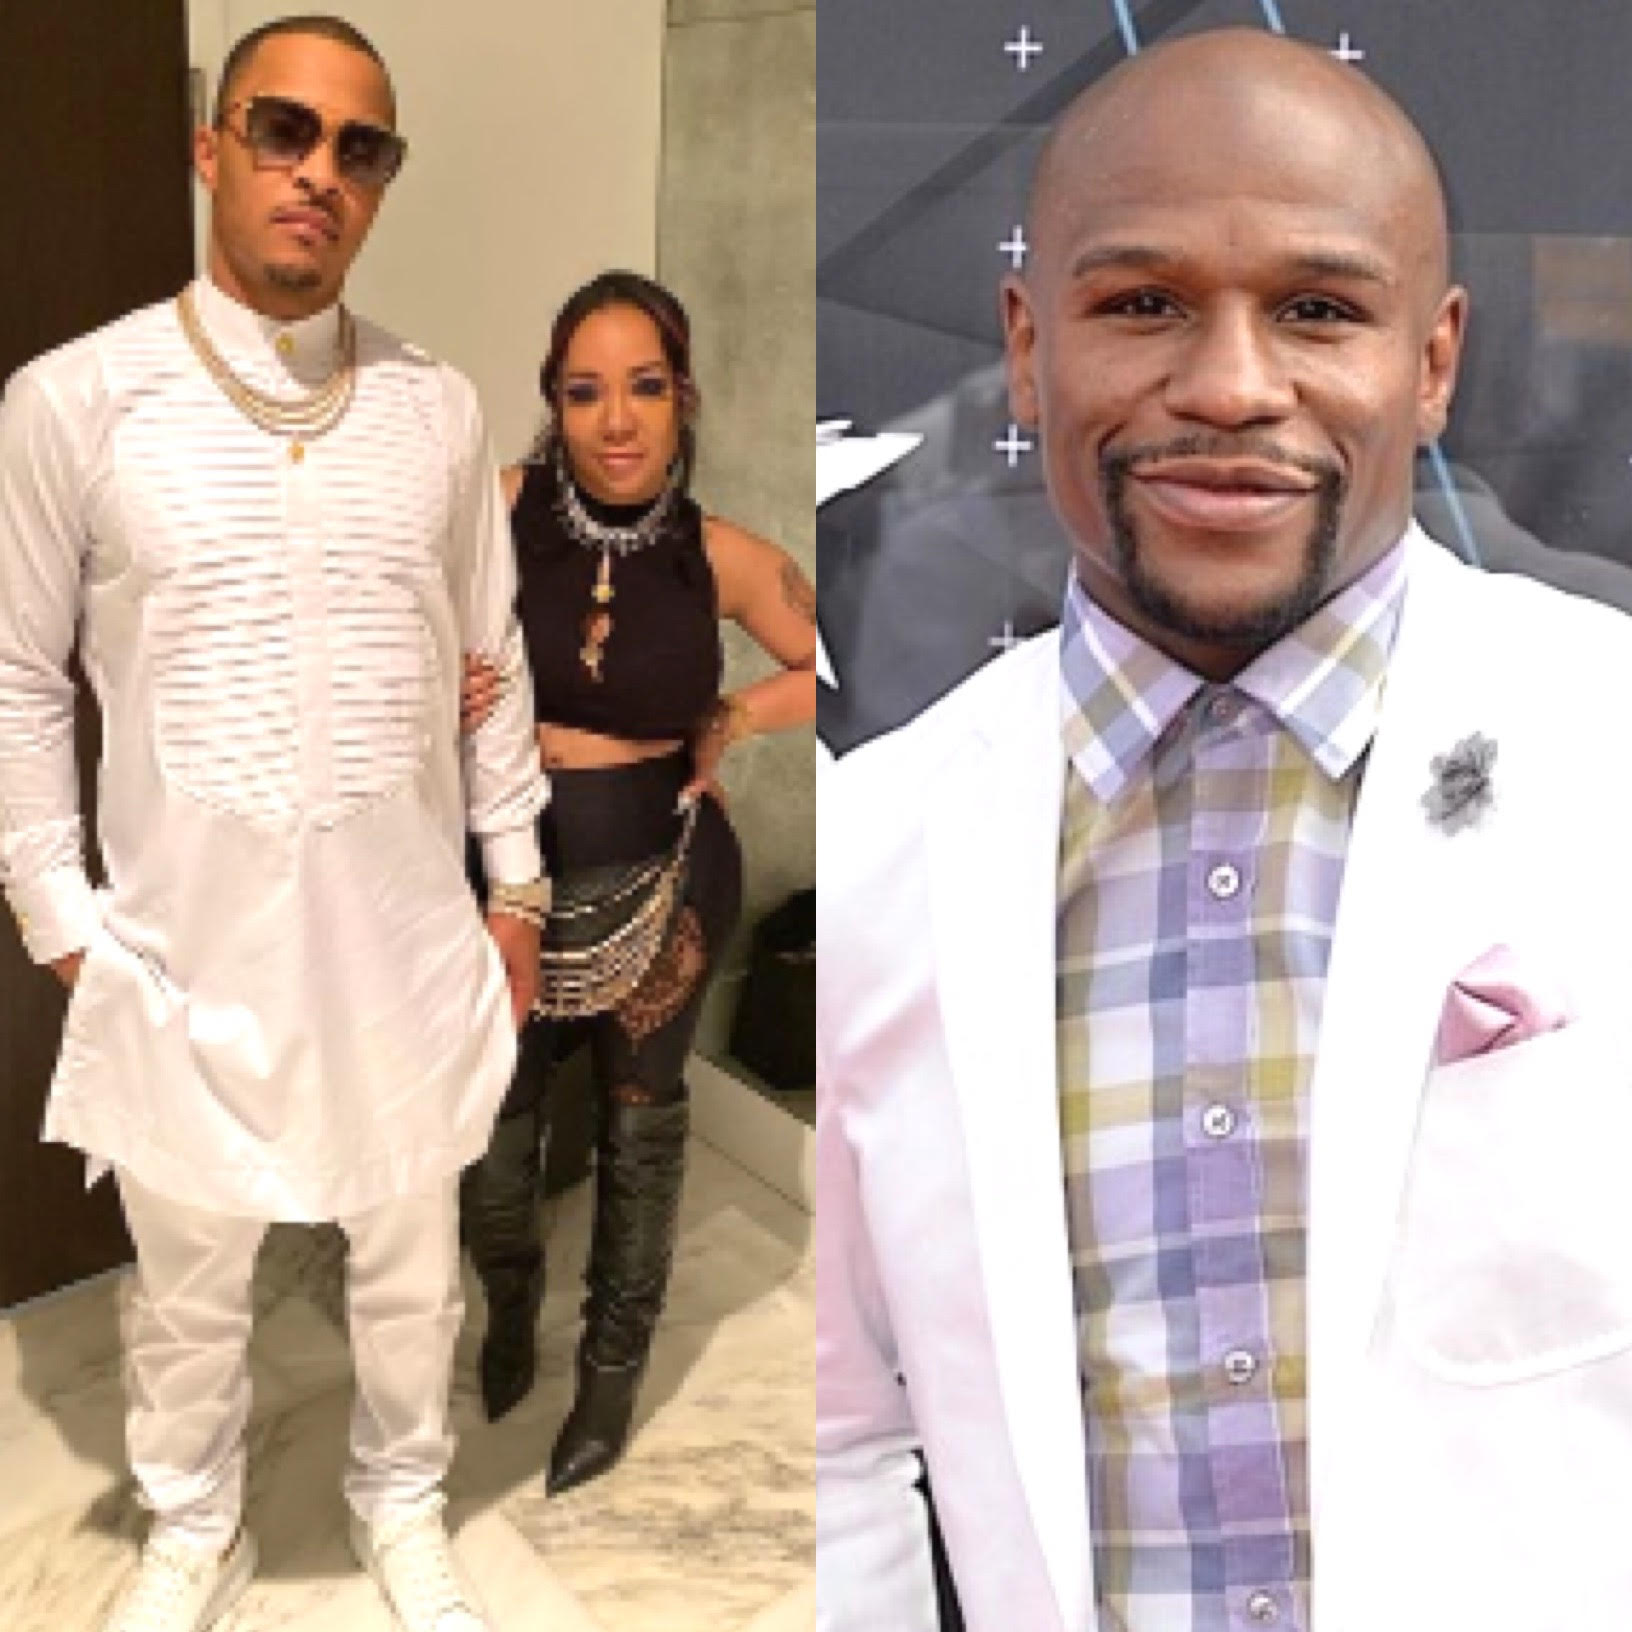 Tiny sides with Floyd Mayweather in fight with T.I.